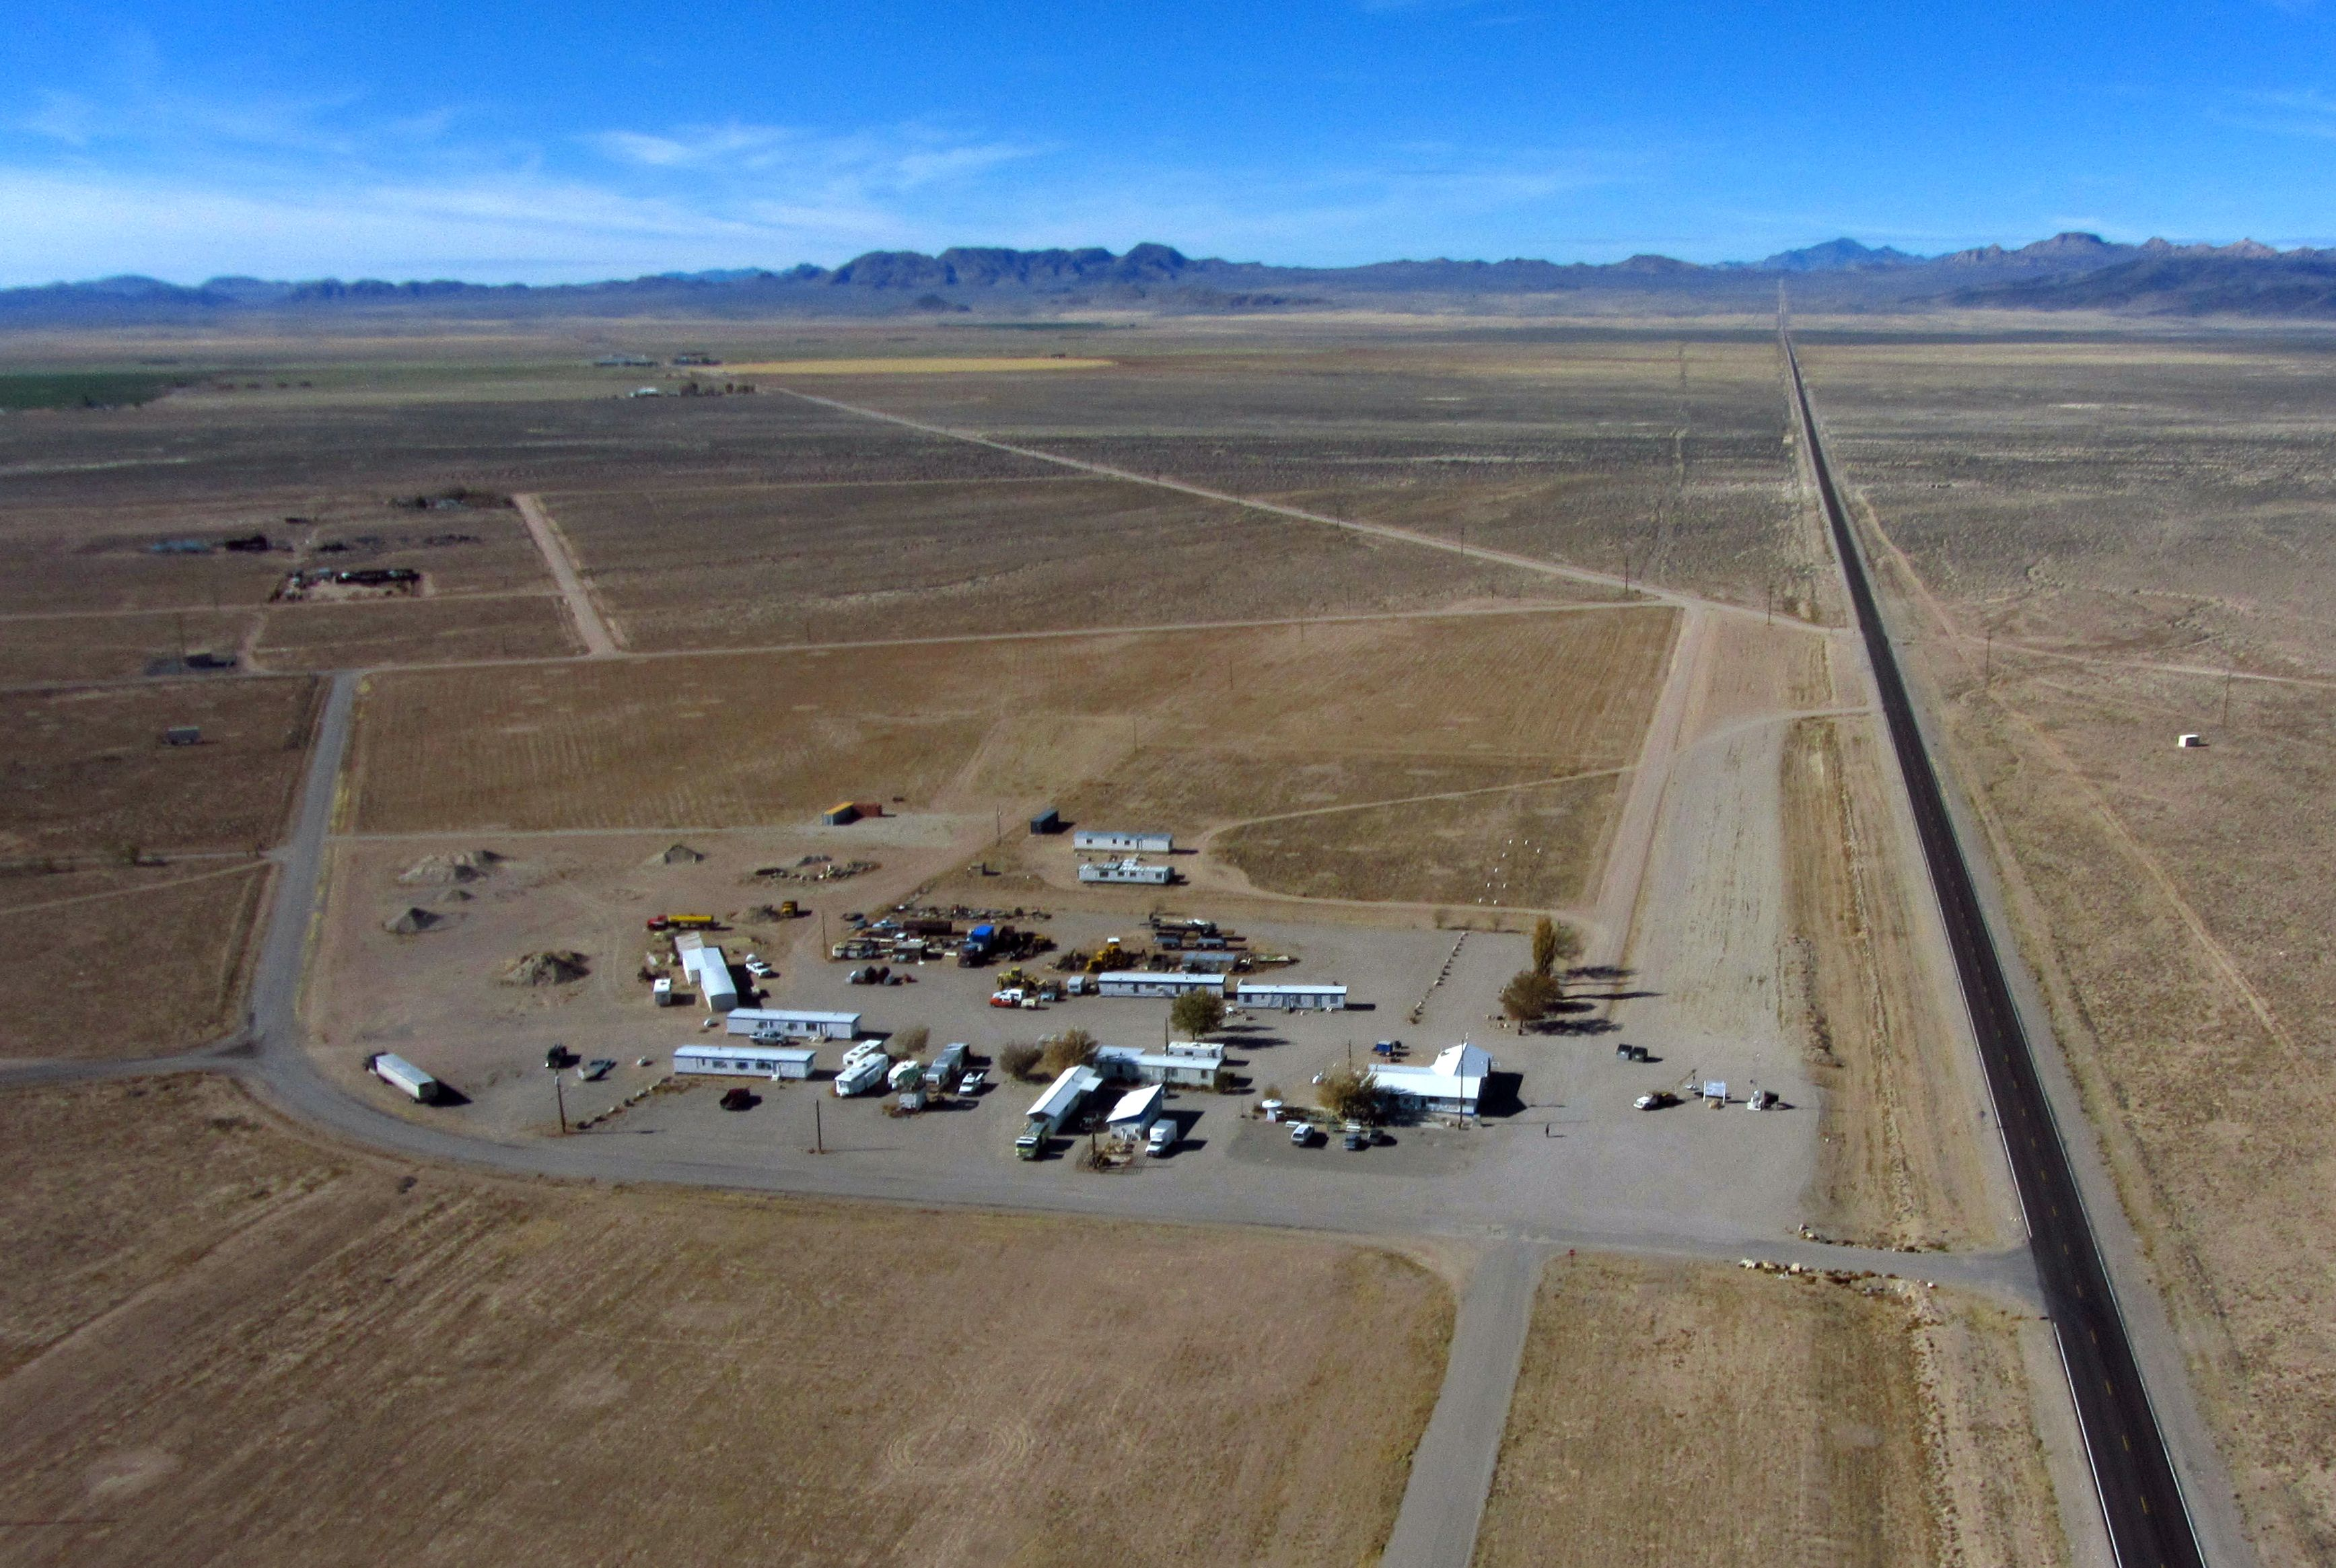 top drones with A Drones Eye View Of Rachel Nevada on 303602 further A Drones Eye View Of Rachel Nevada in addition The 7 Best Data Visualization Tools For Architects likewise 20161115002753 further Word Je Jonger Van Reizen In De Ruimte.